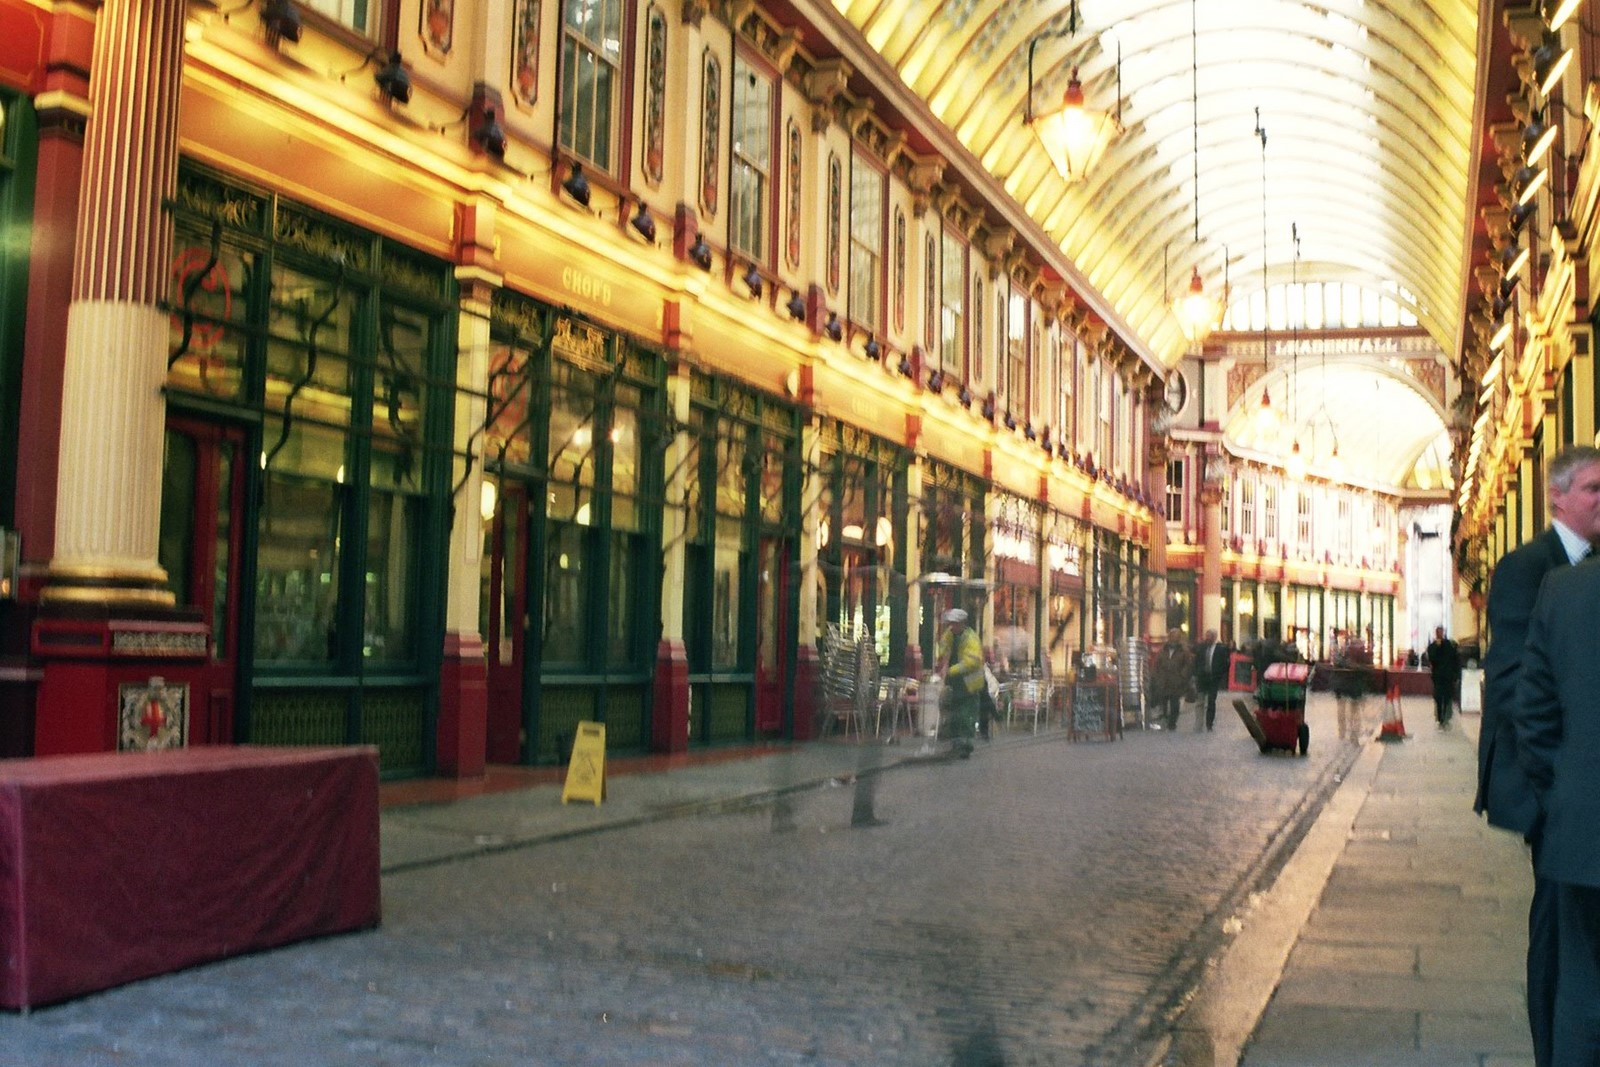 The Leadenhall Market in Central London